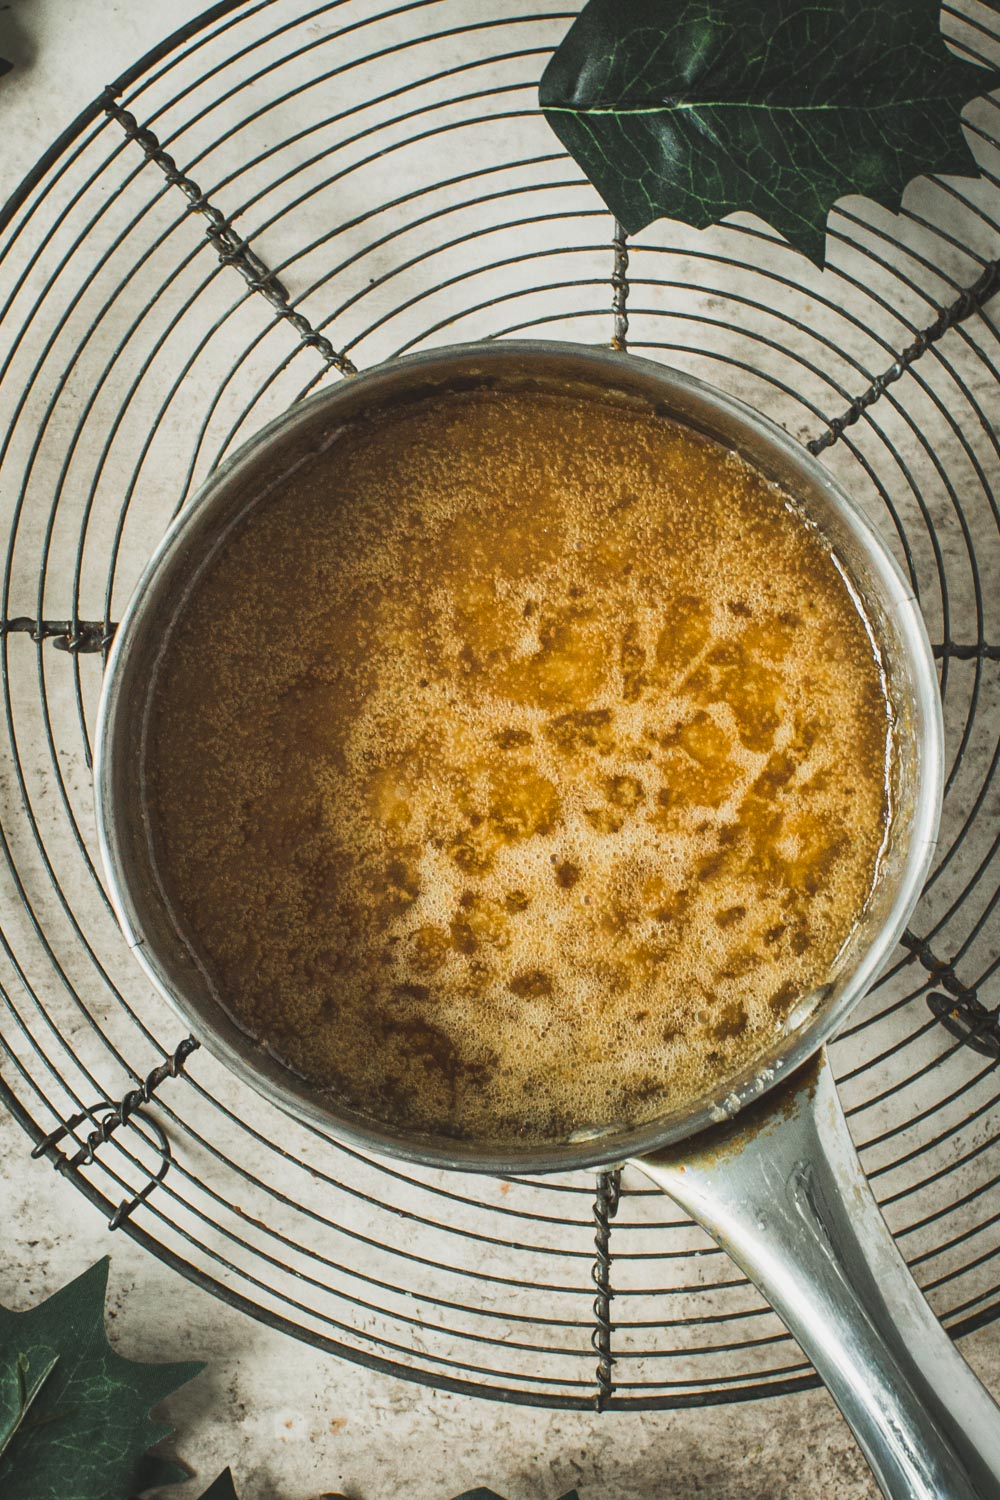 Boiling caramel for praline bars in a small pot.